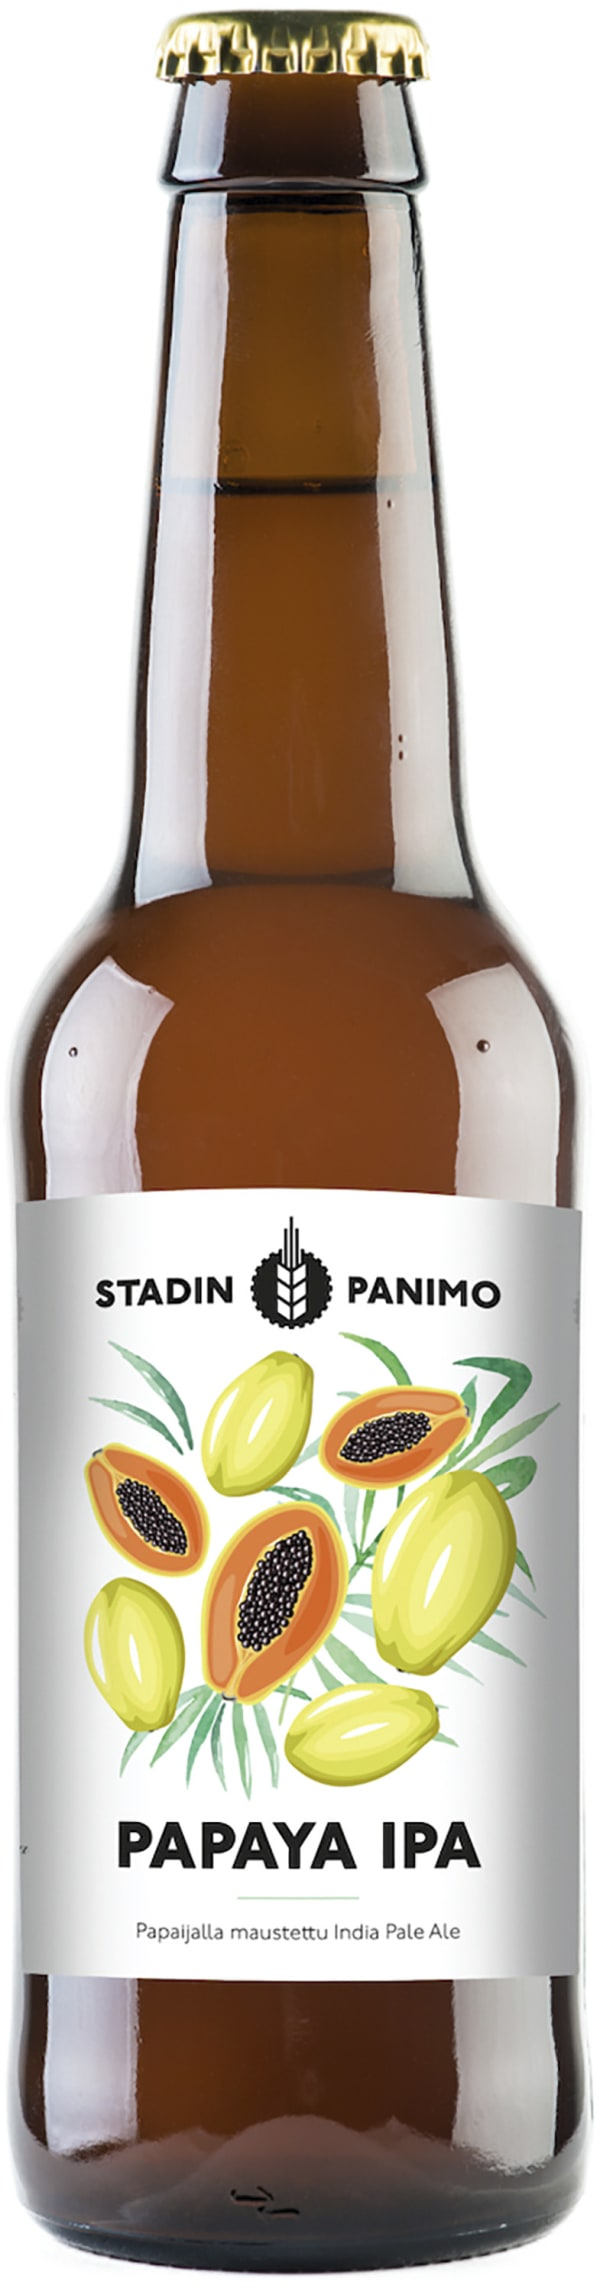 Stadin Papaya IPA